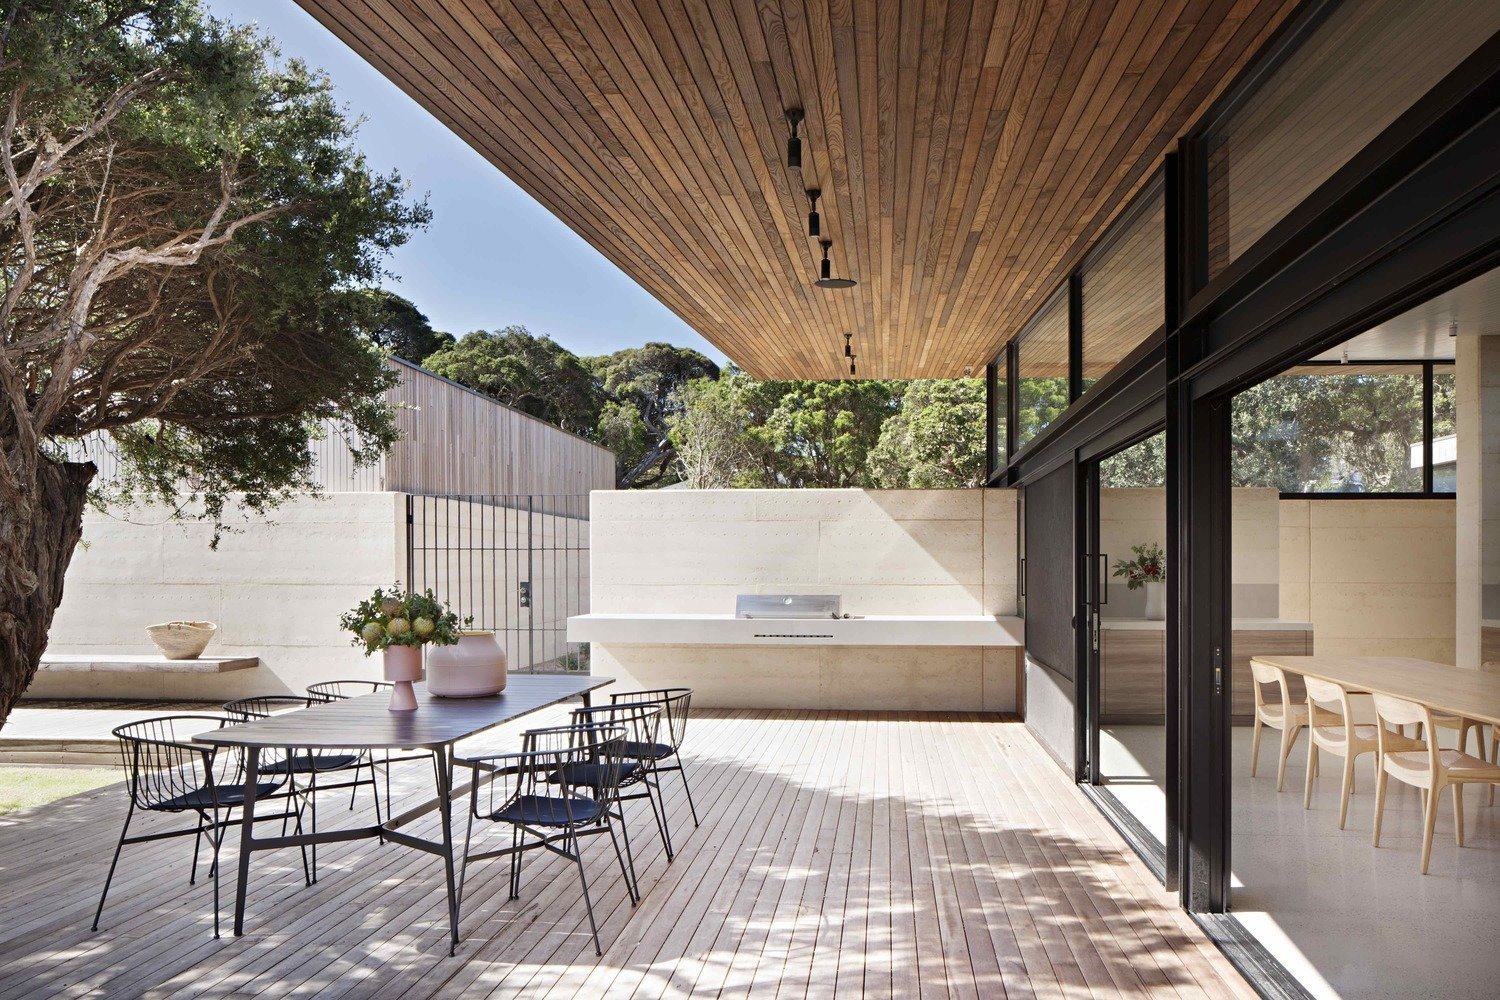 Articles about 7 perfect summer patios on Dwell.com